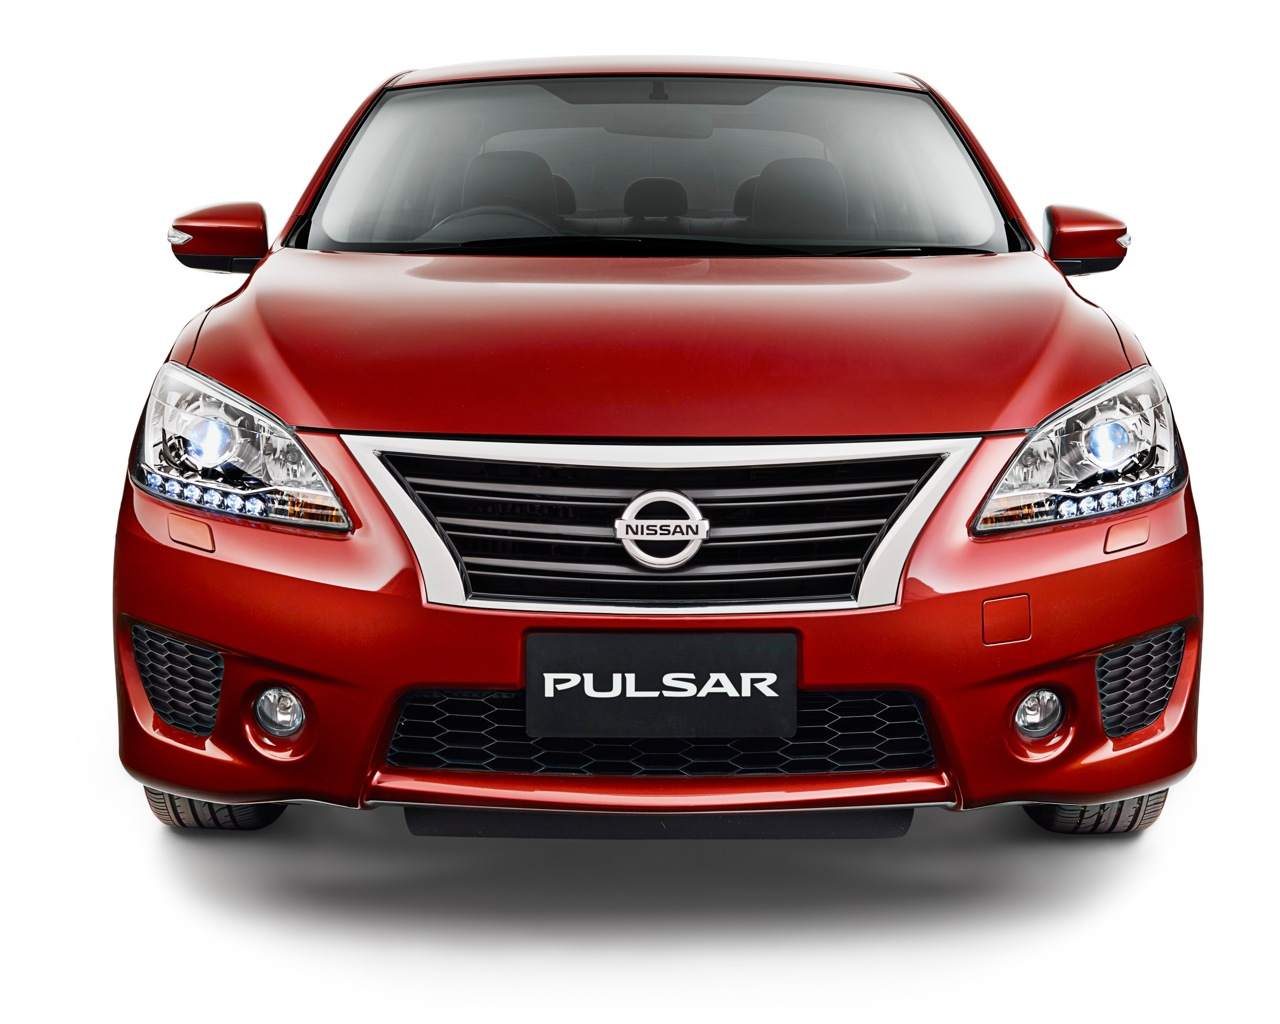 2015 Nissan Pulsar SSS sedan front view press image